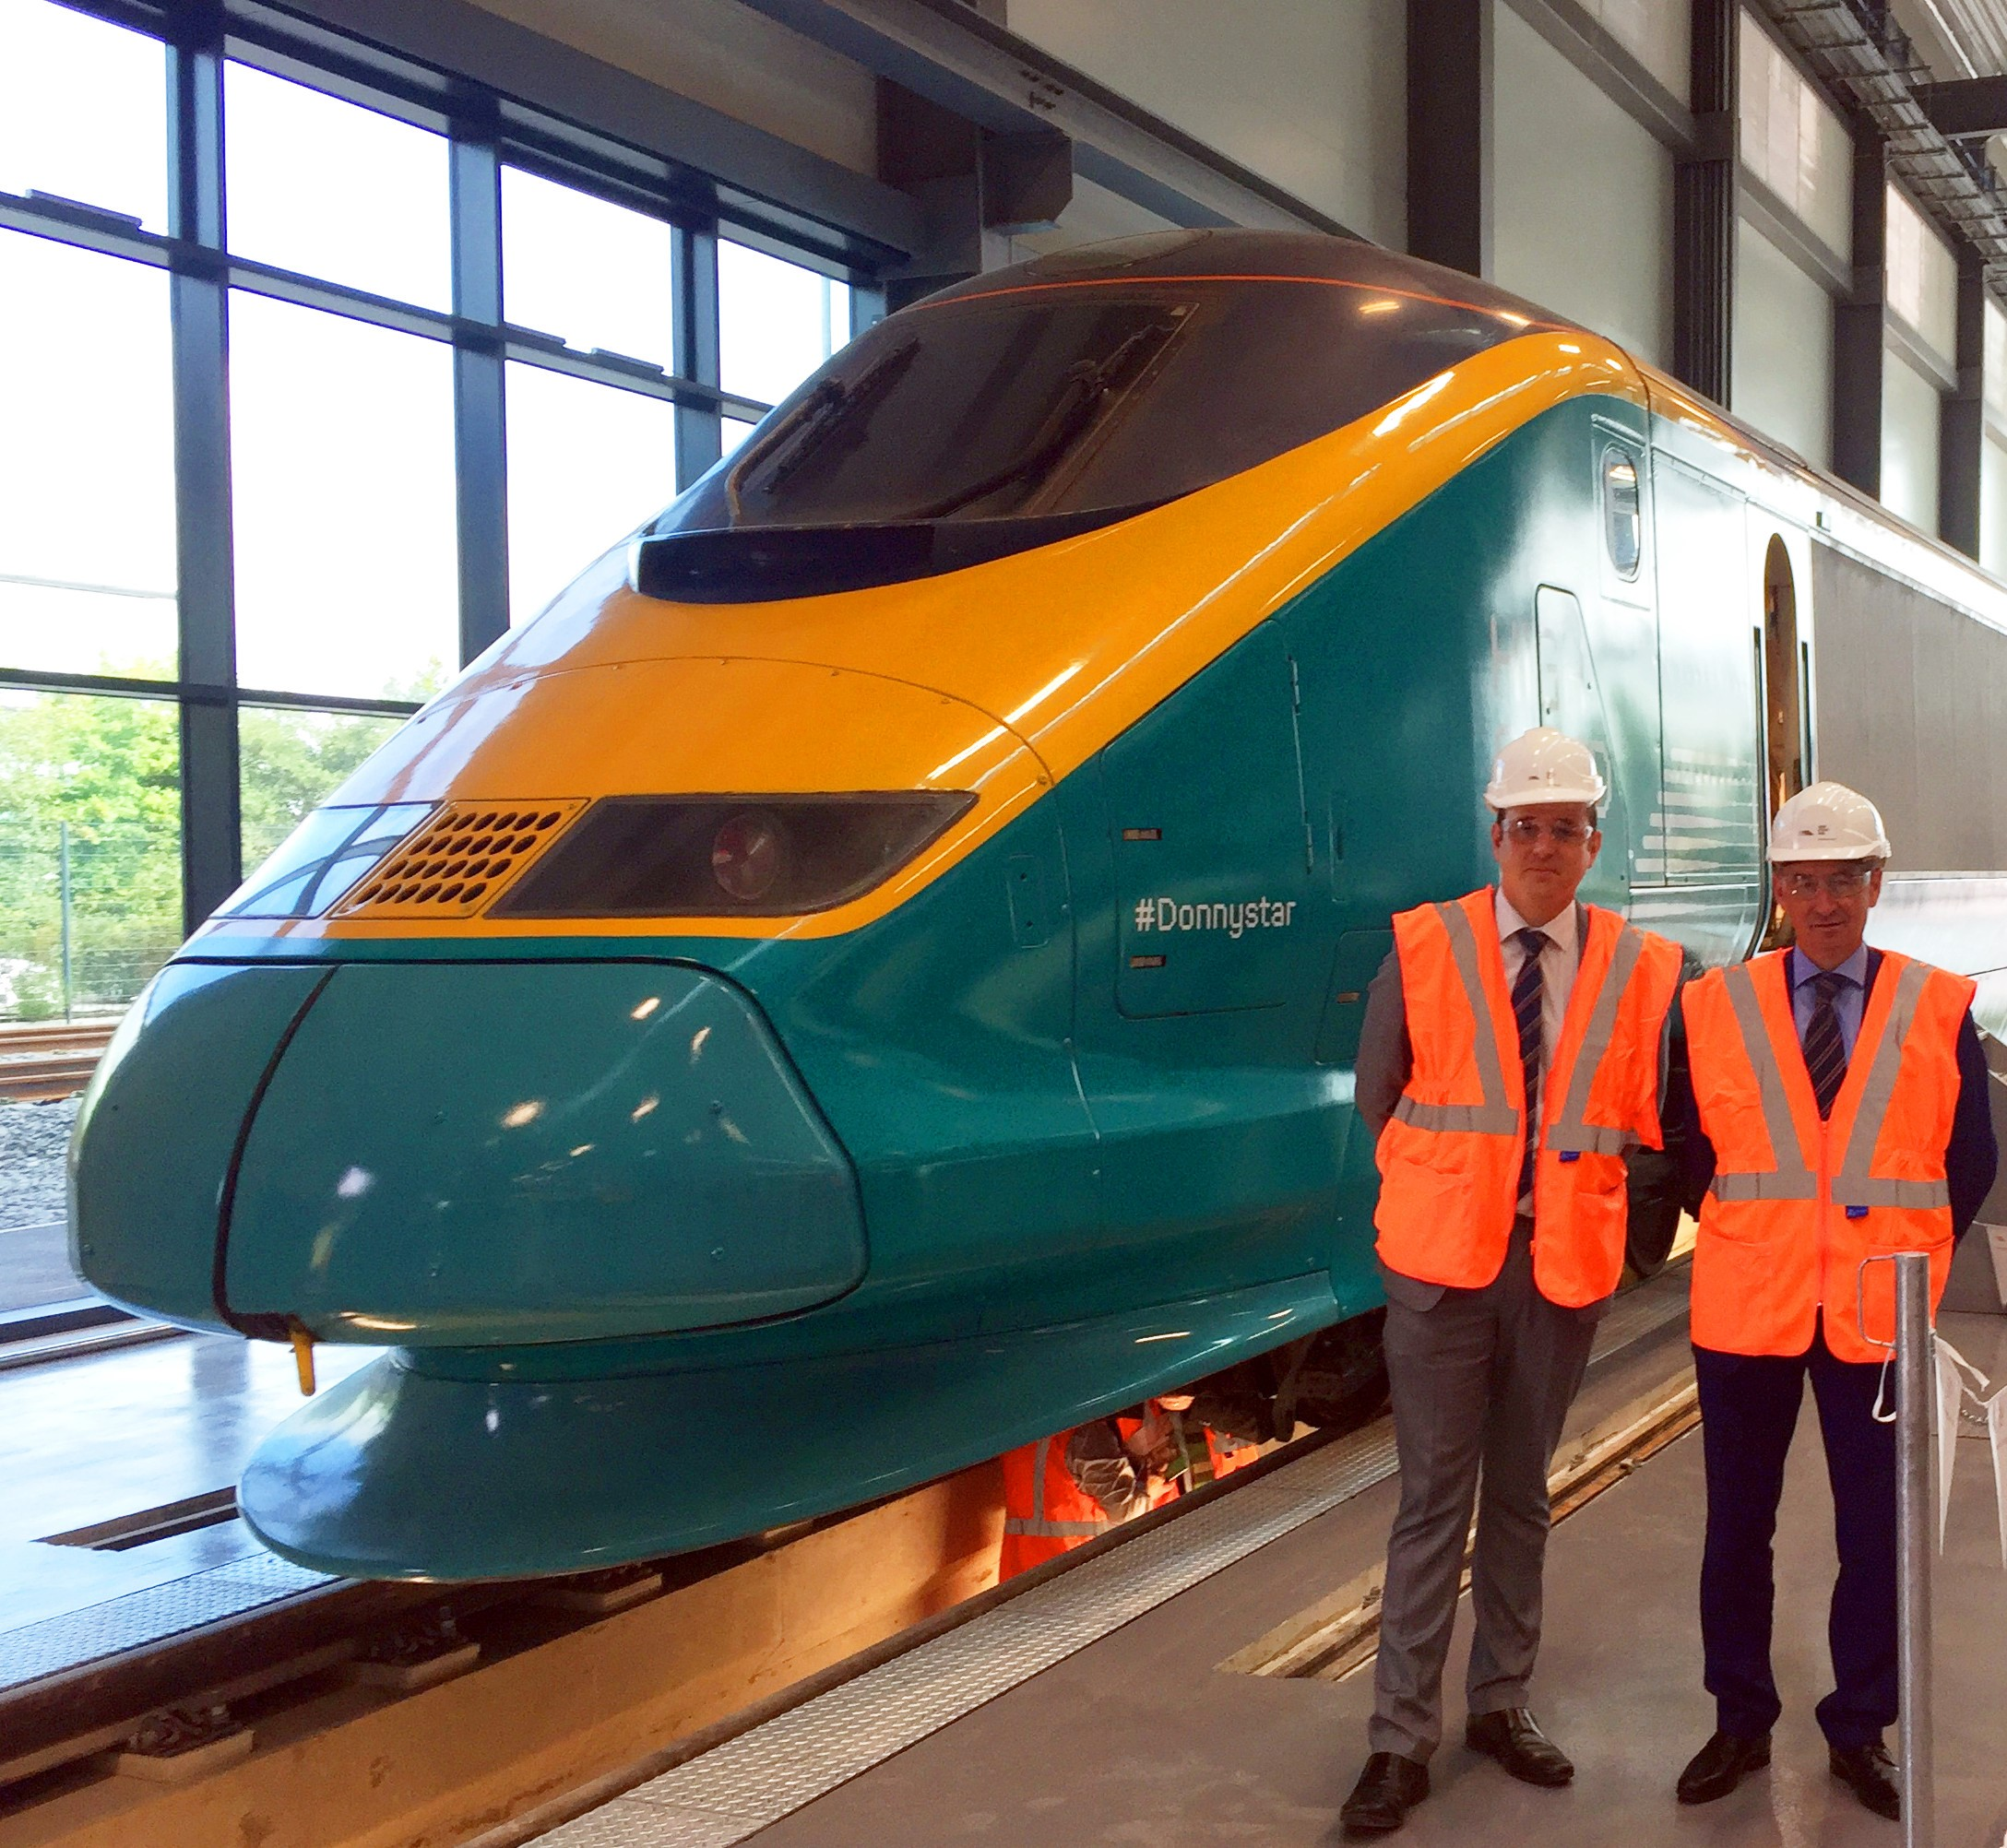 The National College for High Speed rail in Doncaster, with rail supplied by British Steel. Pictured are John Austin, British Steel Key Account Manager (Rail), and Peter Smith, British Steel Managing Director Rail